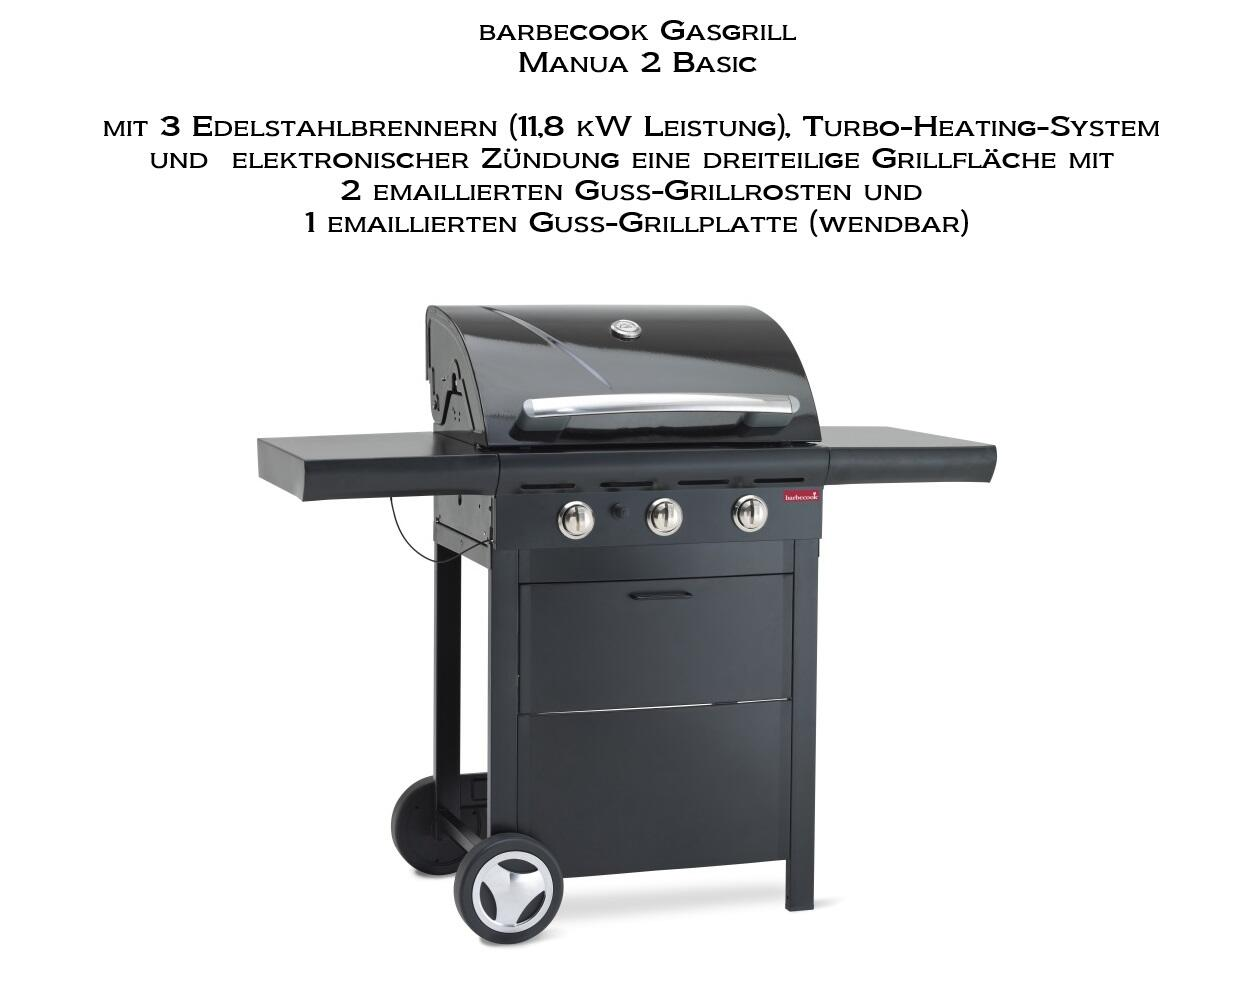 Grilltreff24 Mr Grill On Twitter Quotaktion Barbecook Manua 2 Basic Im